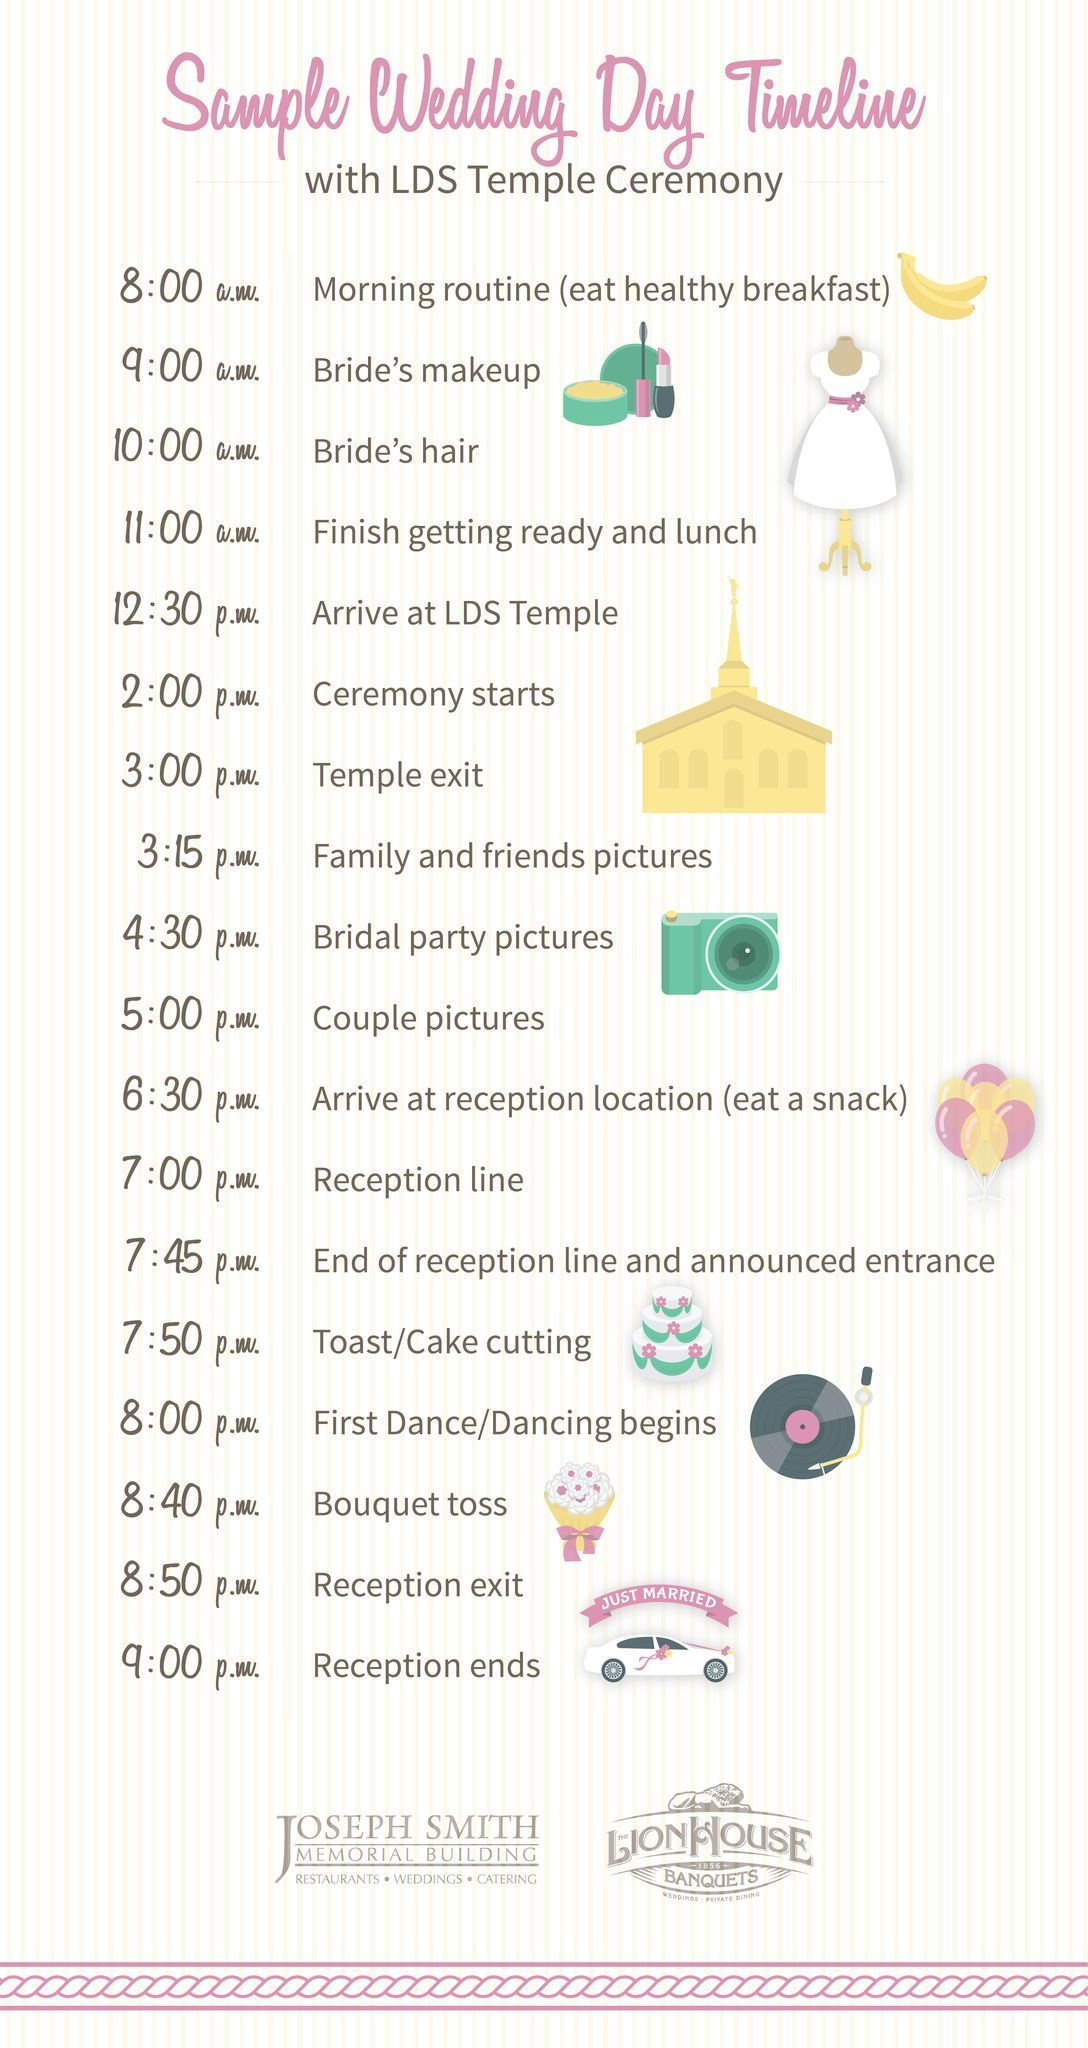 How To Build Your Wedding Day Timeline In